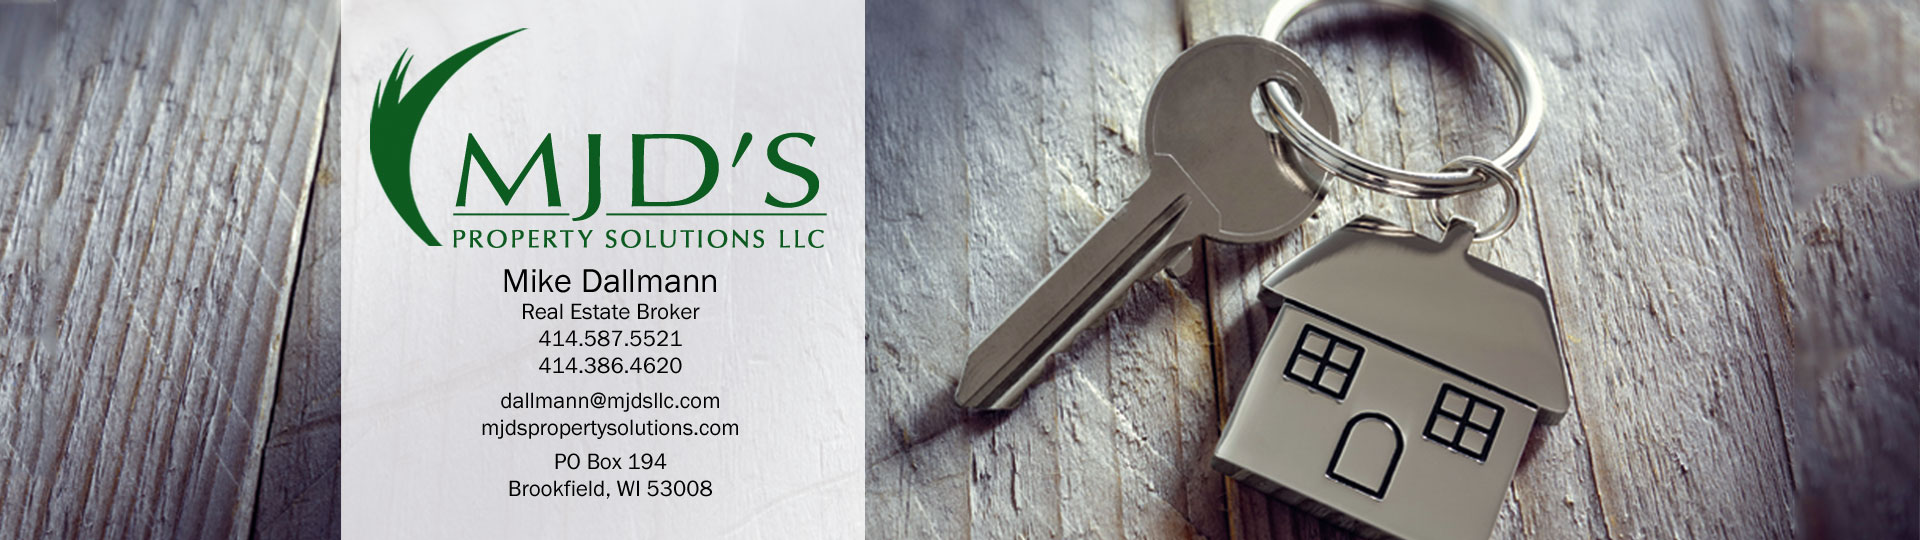 MJDs Property Solutions | Southeast Wisconsin Realtor